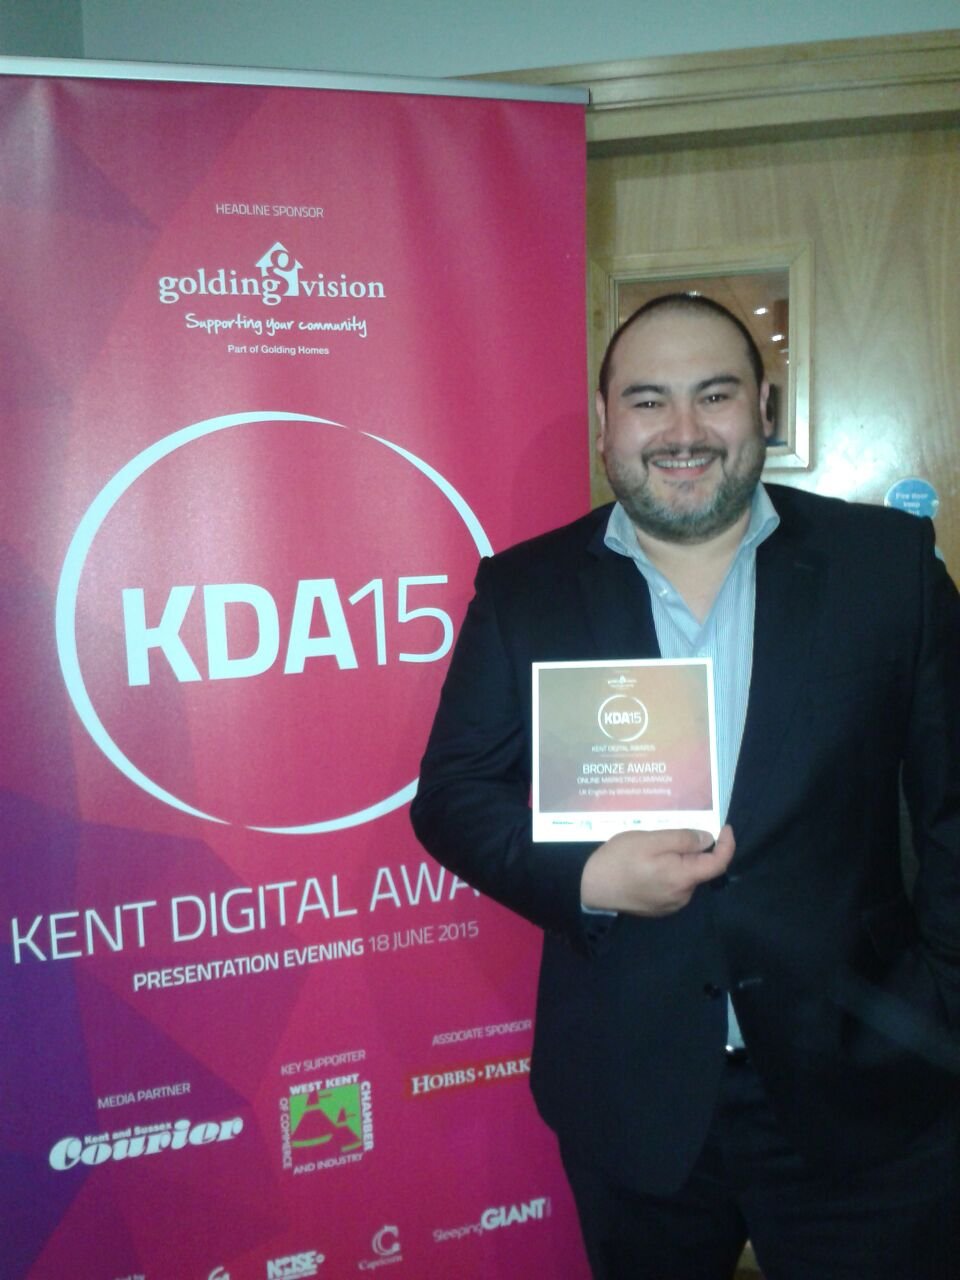 Whitefish Marketing win Bronze Award for Online Marketing Campaign